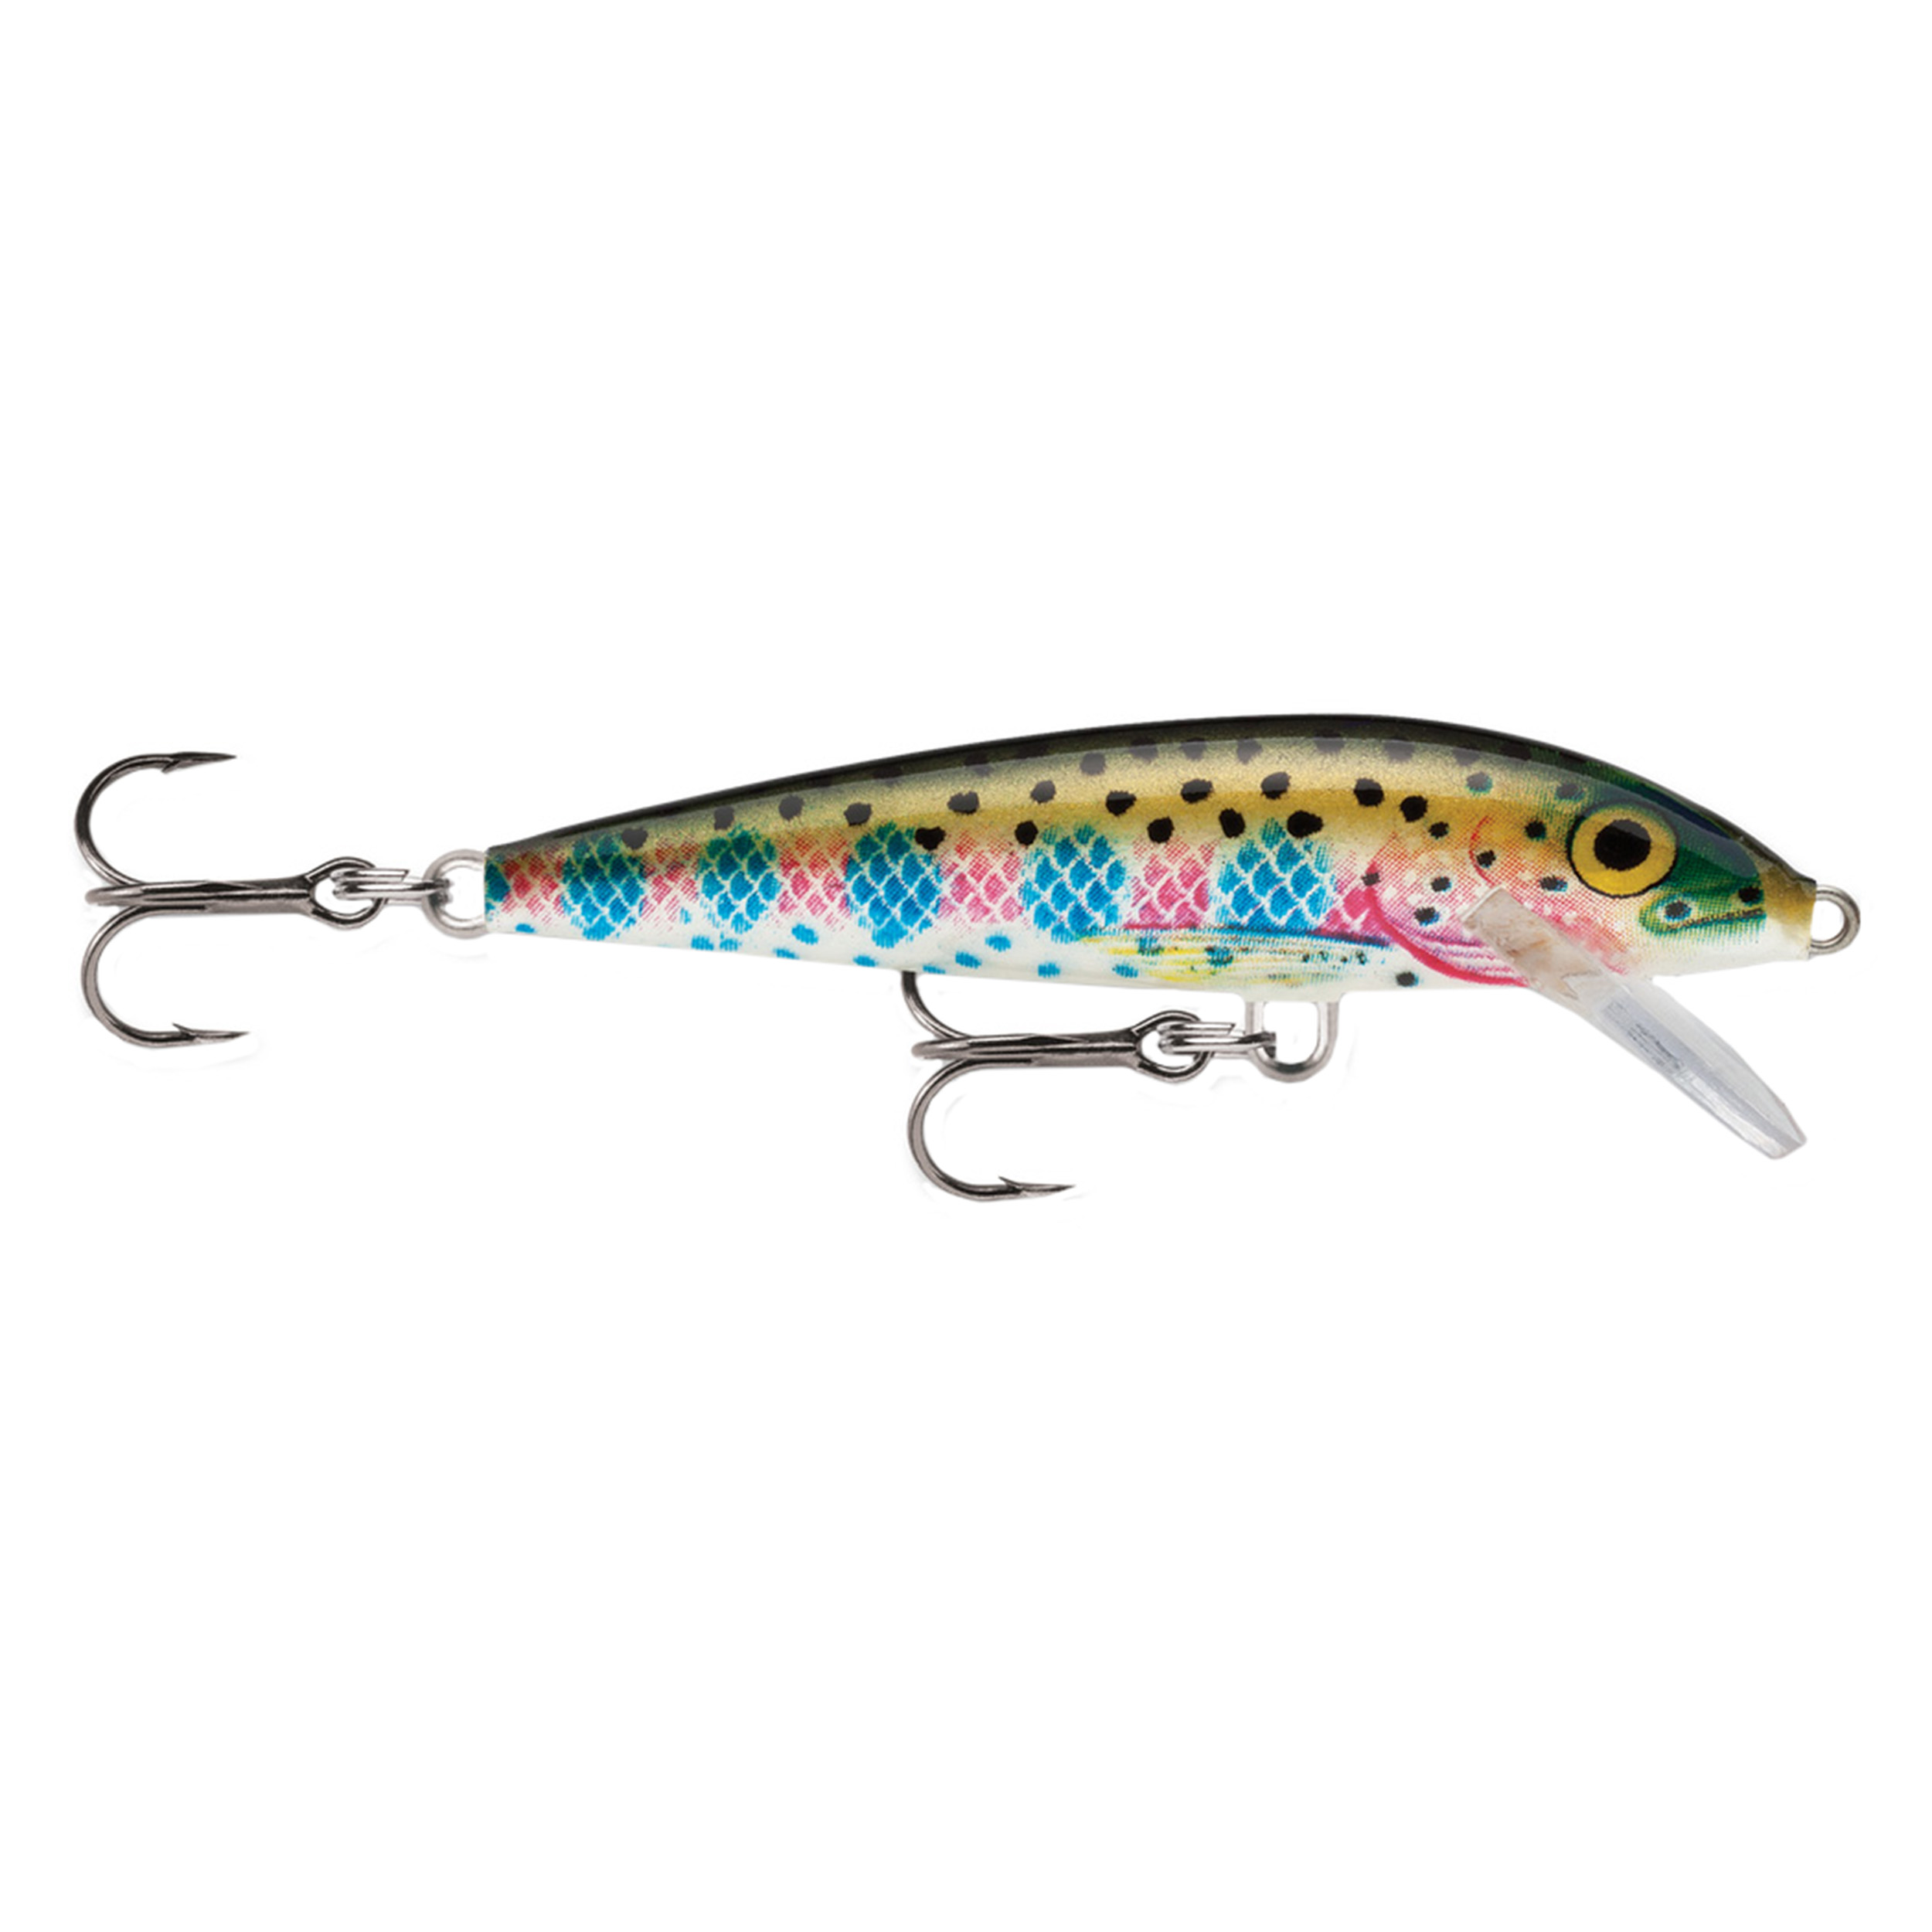 "Rapala Original Floating Lure Size 07, 2 3 4"" Length, 3'-5' Depth, 2 No 7 Treble Hooks, Rainbow Trout, Per 1 by Rapala"